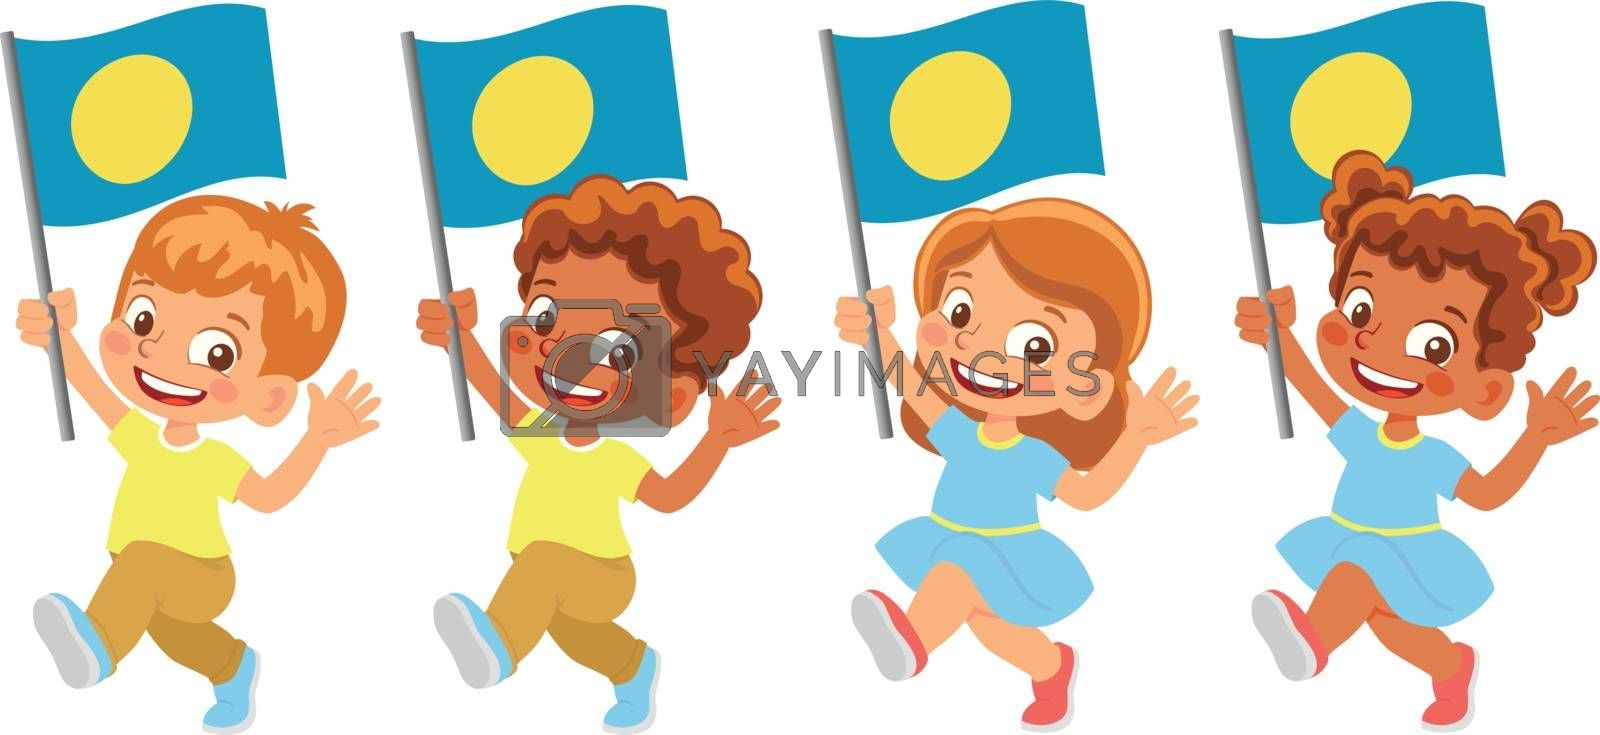 Palau flag in hand. Children holding flag. National flag of Palau vector